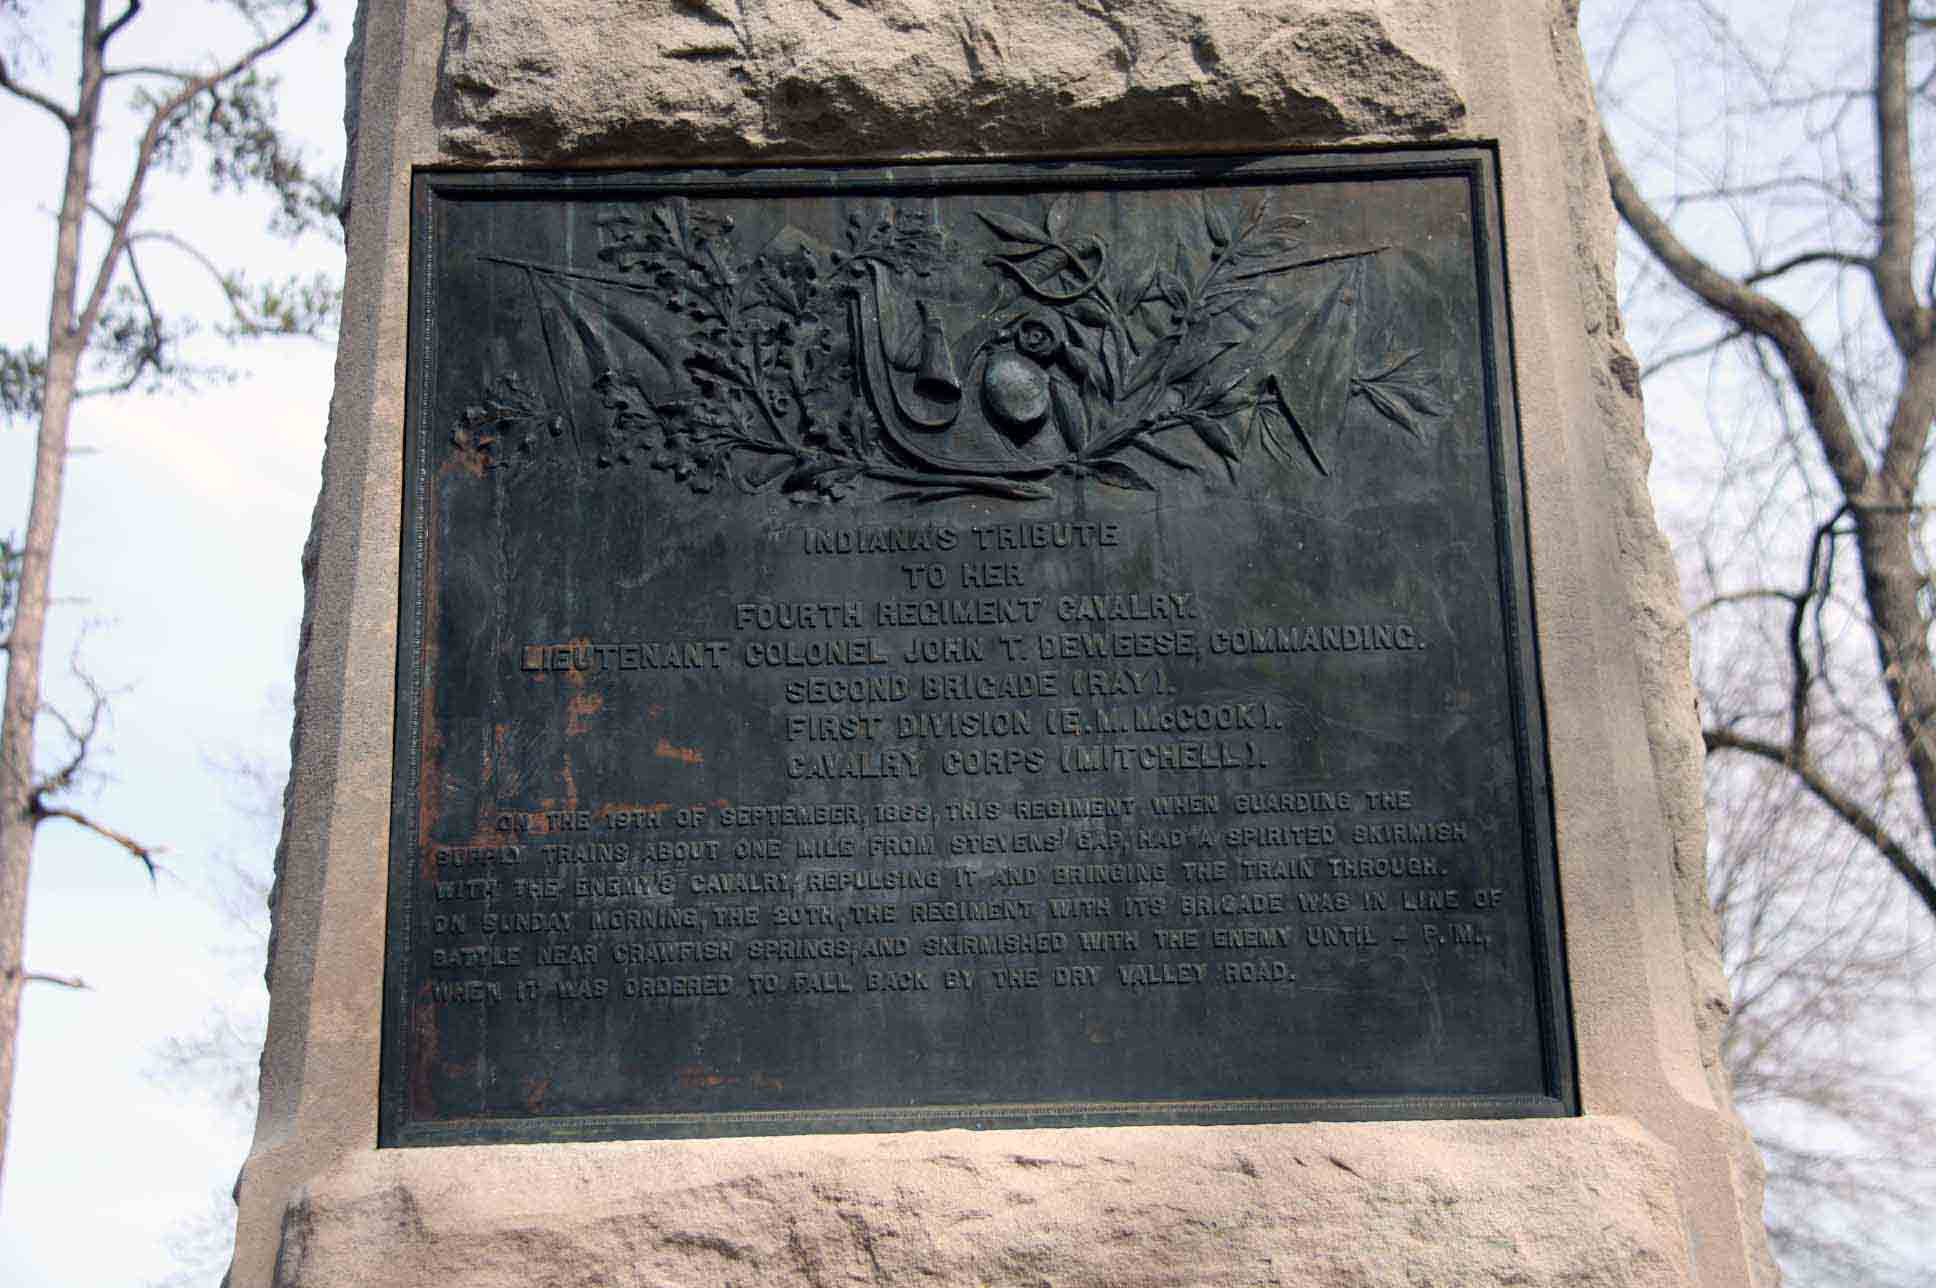 4th Regiment Indiana Cavalry Monument, click photo to enlarge.